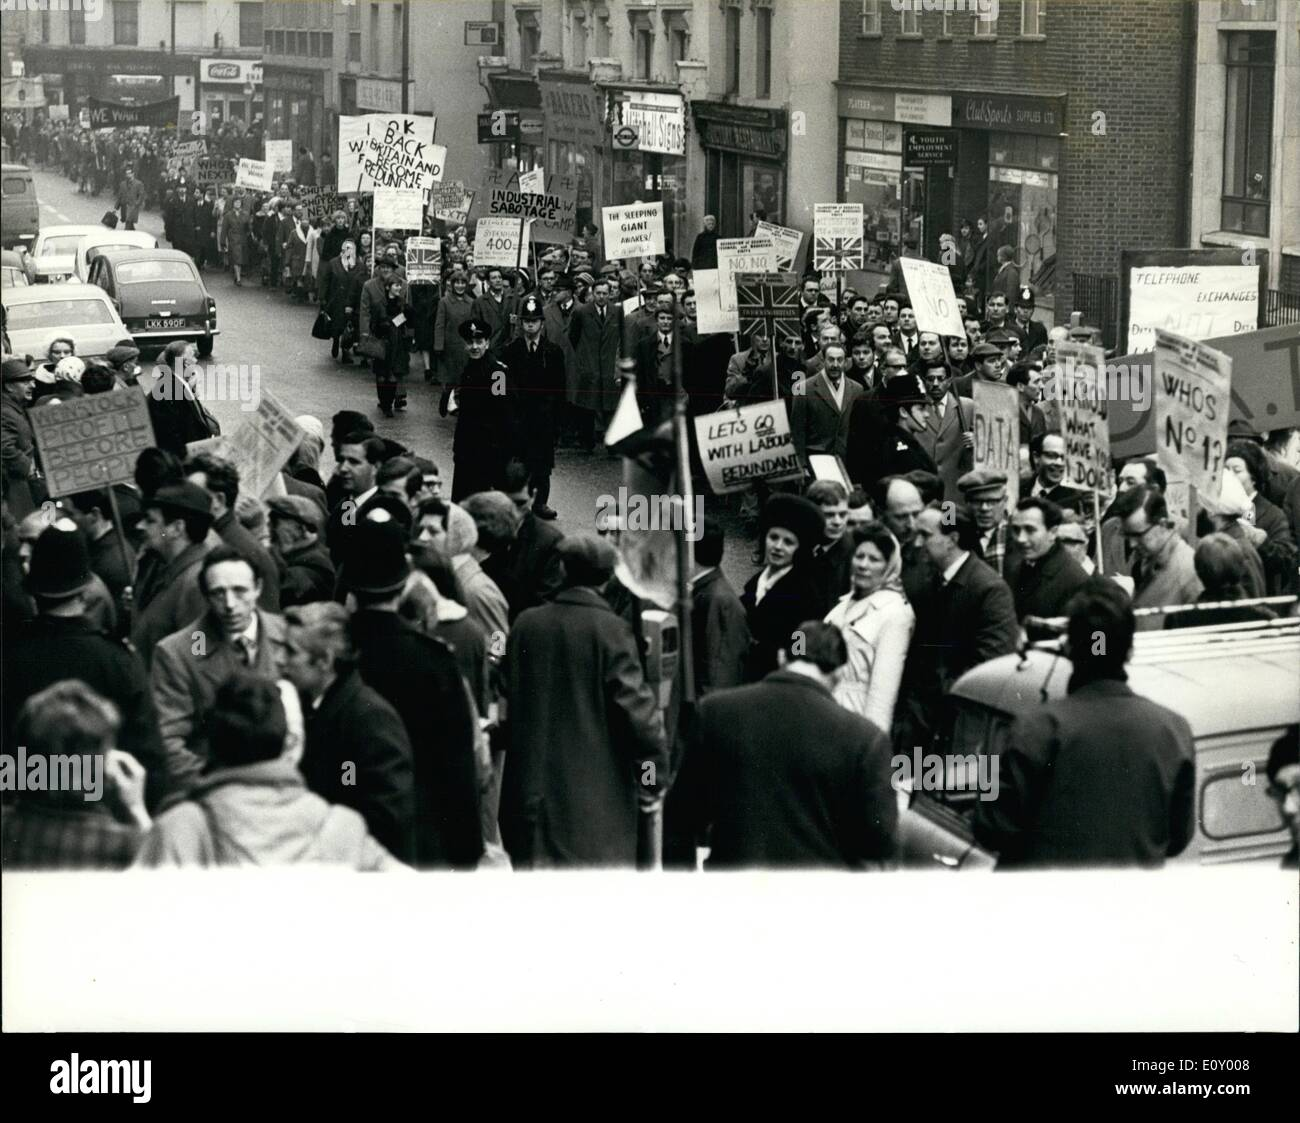 Feb. 02, 1968 - Workers in Protest March.: Five thousand angry men and women downed tools yesterday in protest over plans to shut their factory. The workers, from the Associated Electrical Industries plant in Woolwich, London, then marched in a mile-long queue to a cinema where they met union chiefs. Mr. Christopher Mayhew, M.P. for East Woolwich, who addressed the meeting, described the company's decision to close the factory as a ''bombshell which has wrecked the entire area's employment situation .'' Photo shows the workers seen during their protest match through Woolwich yesterday. - Stock Image